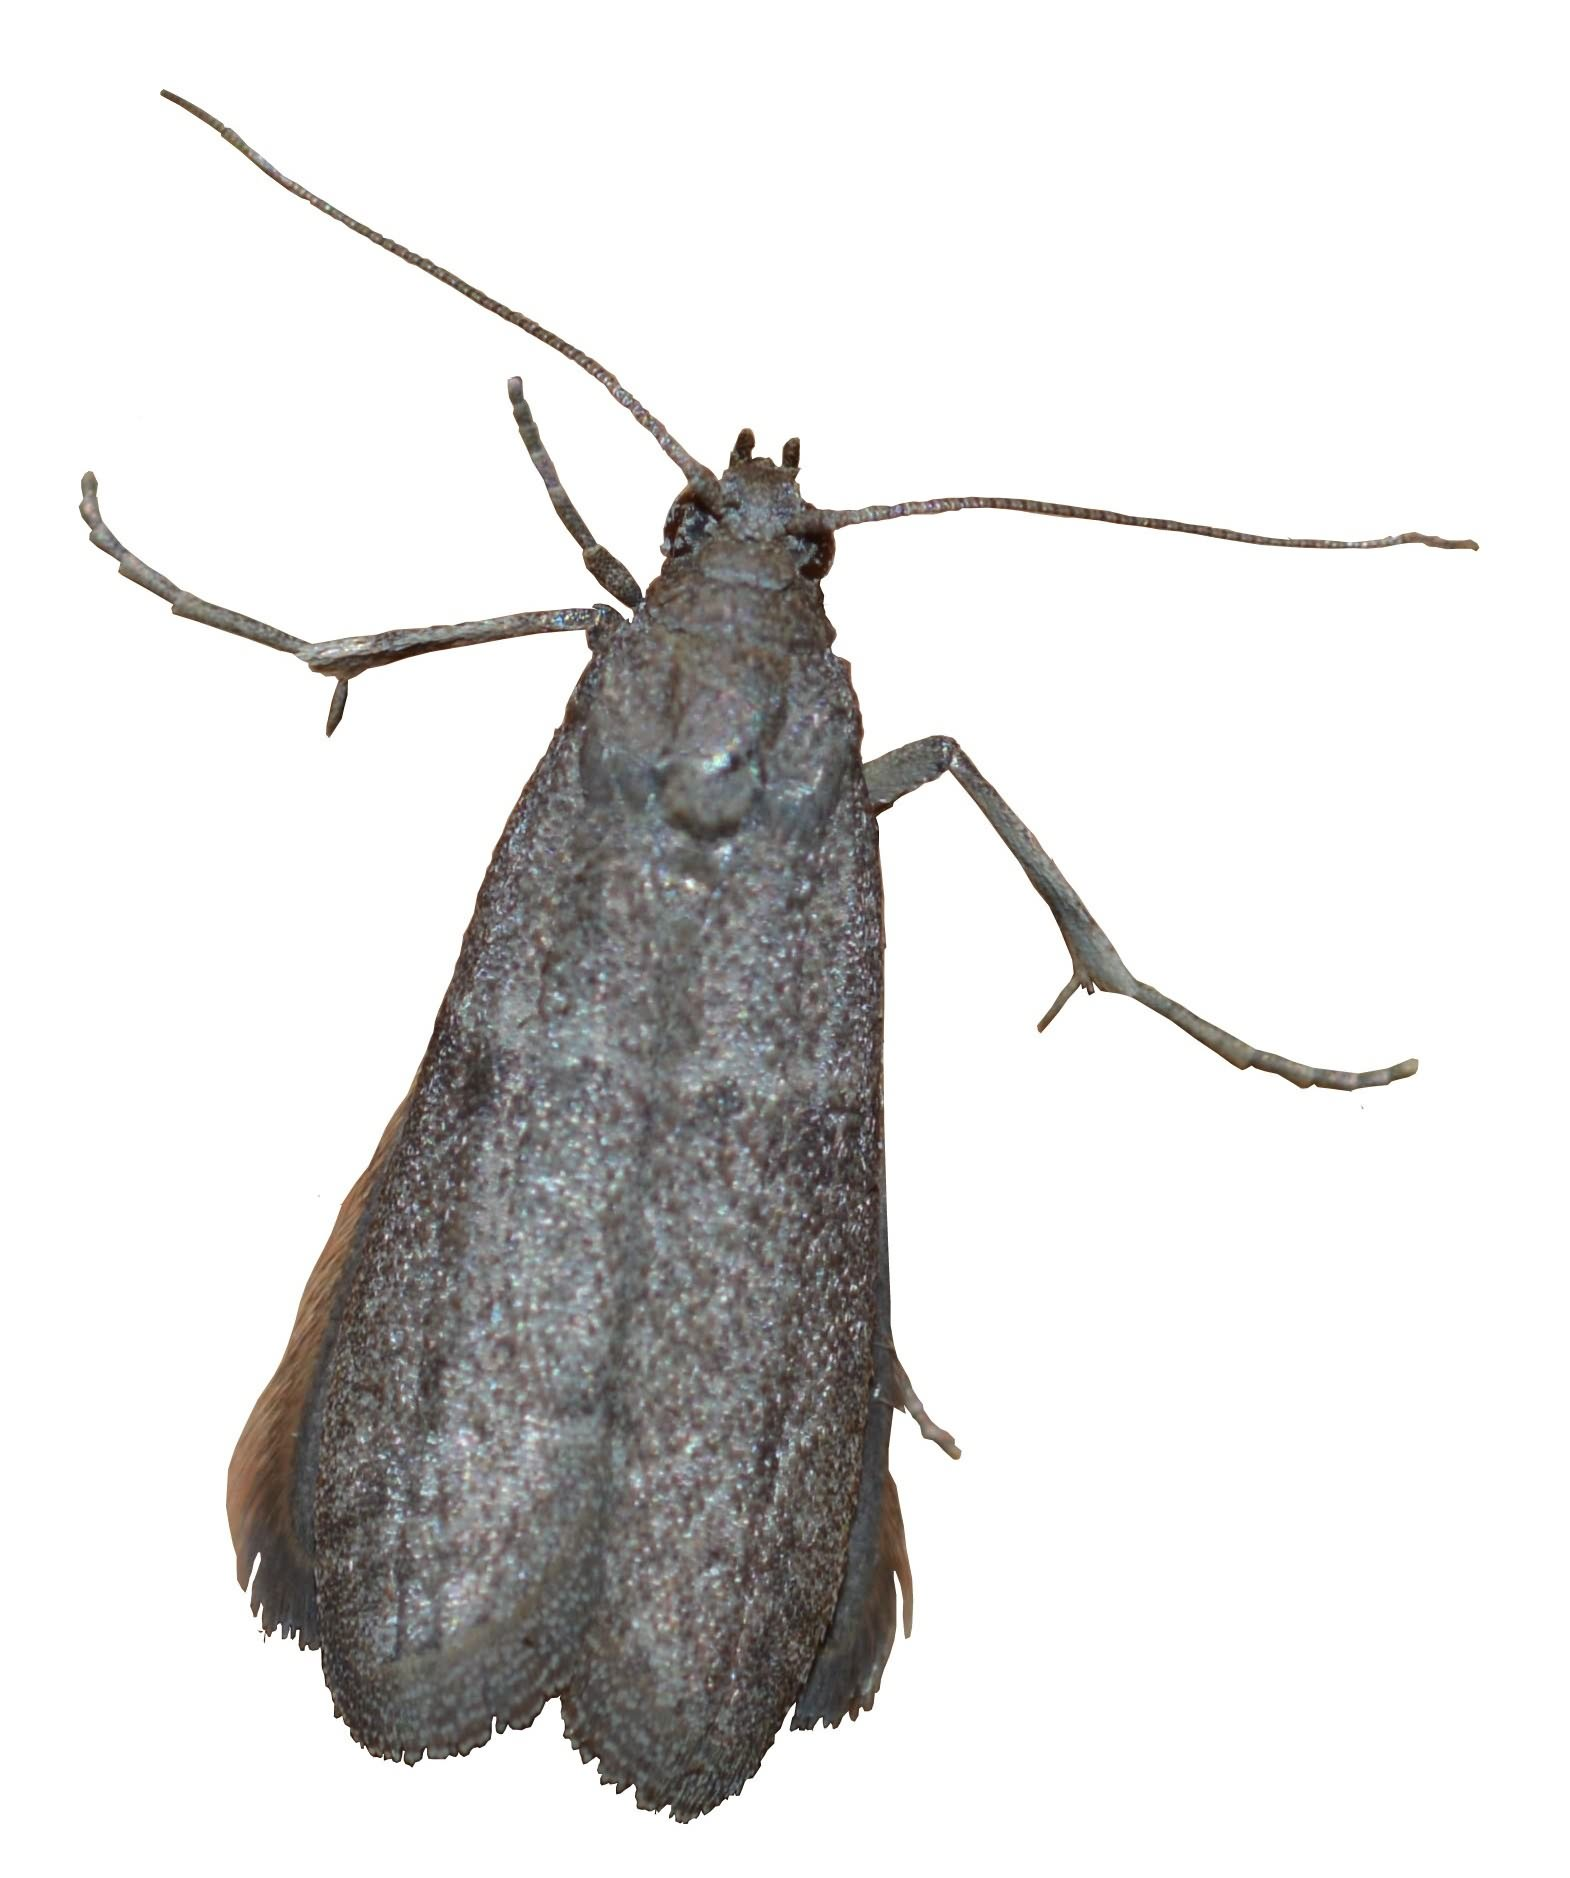 Figure 2. Cadra cautella adult